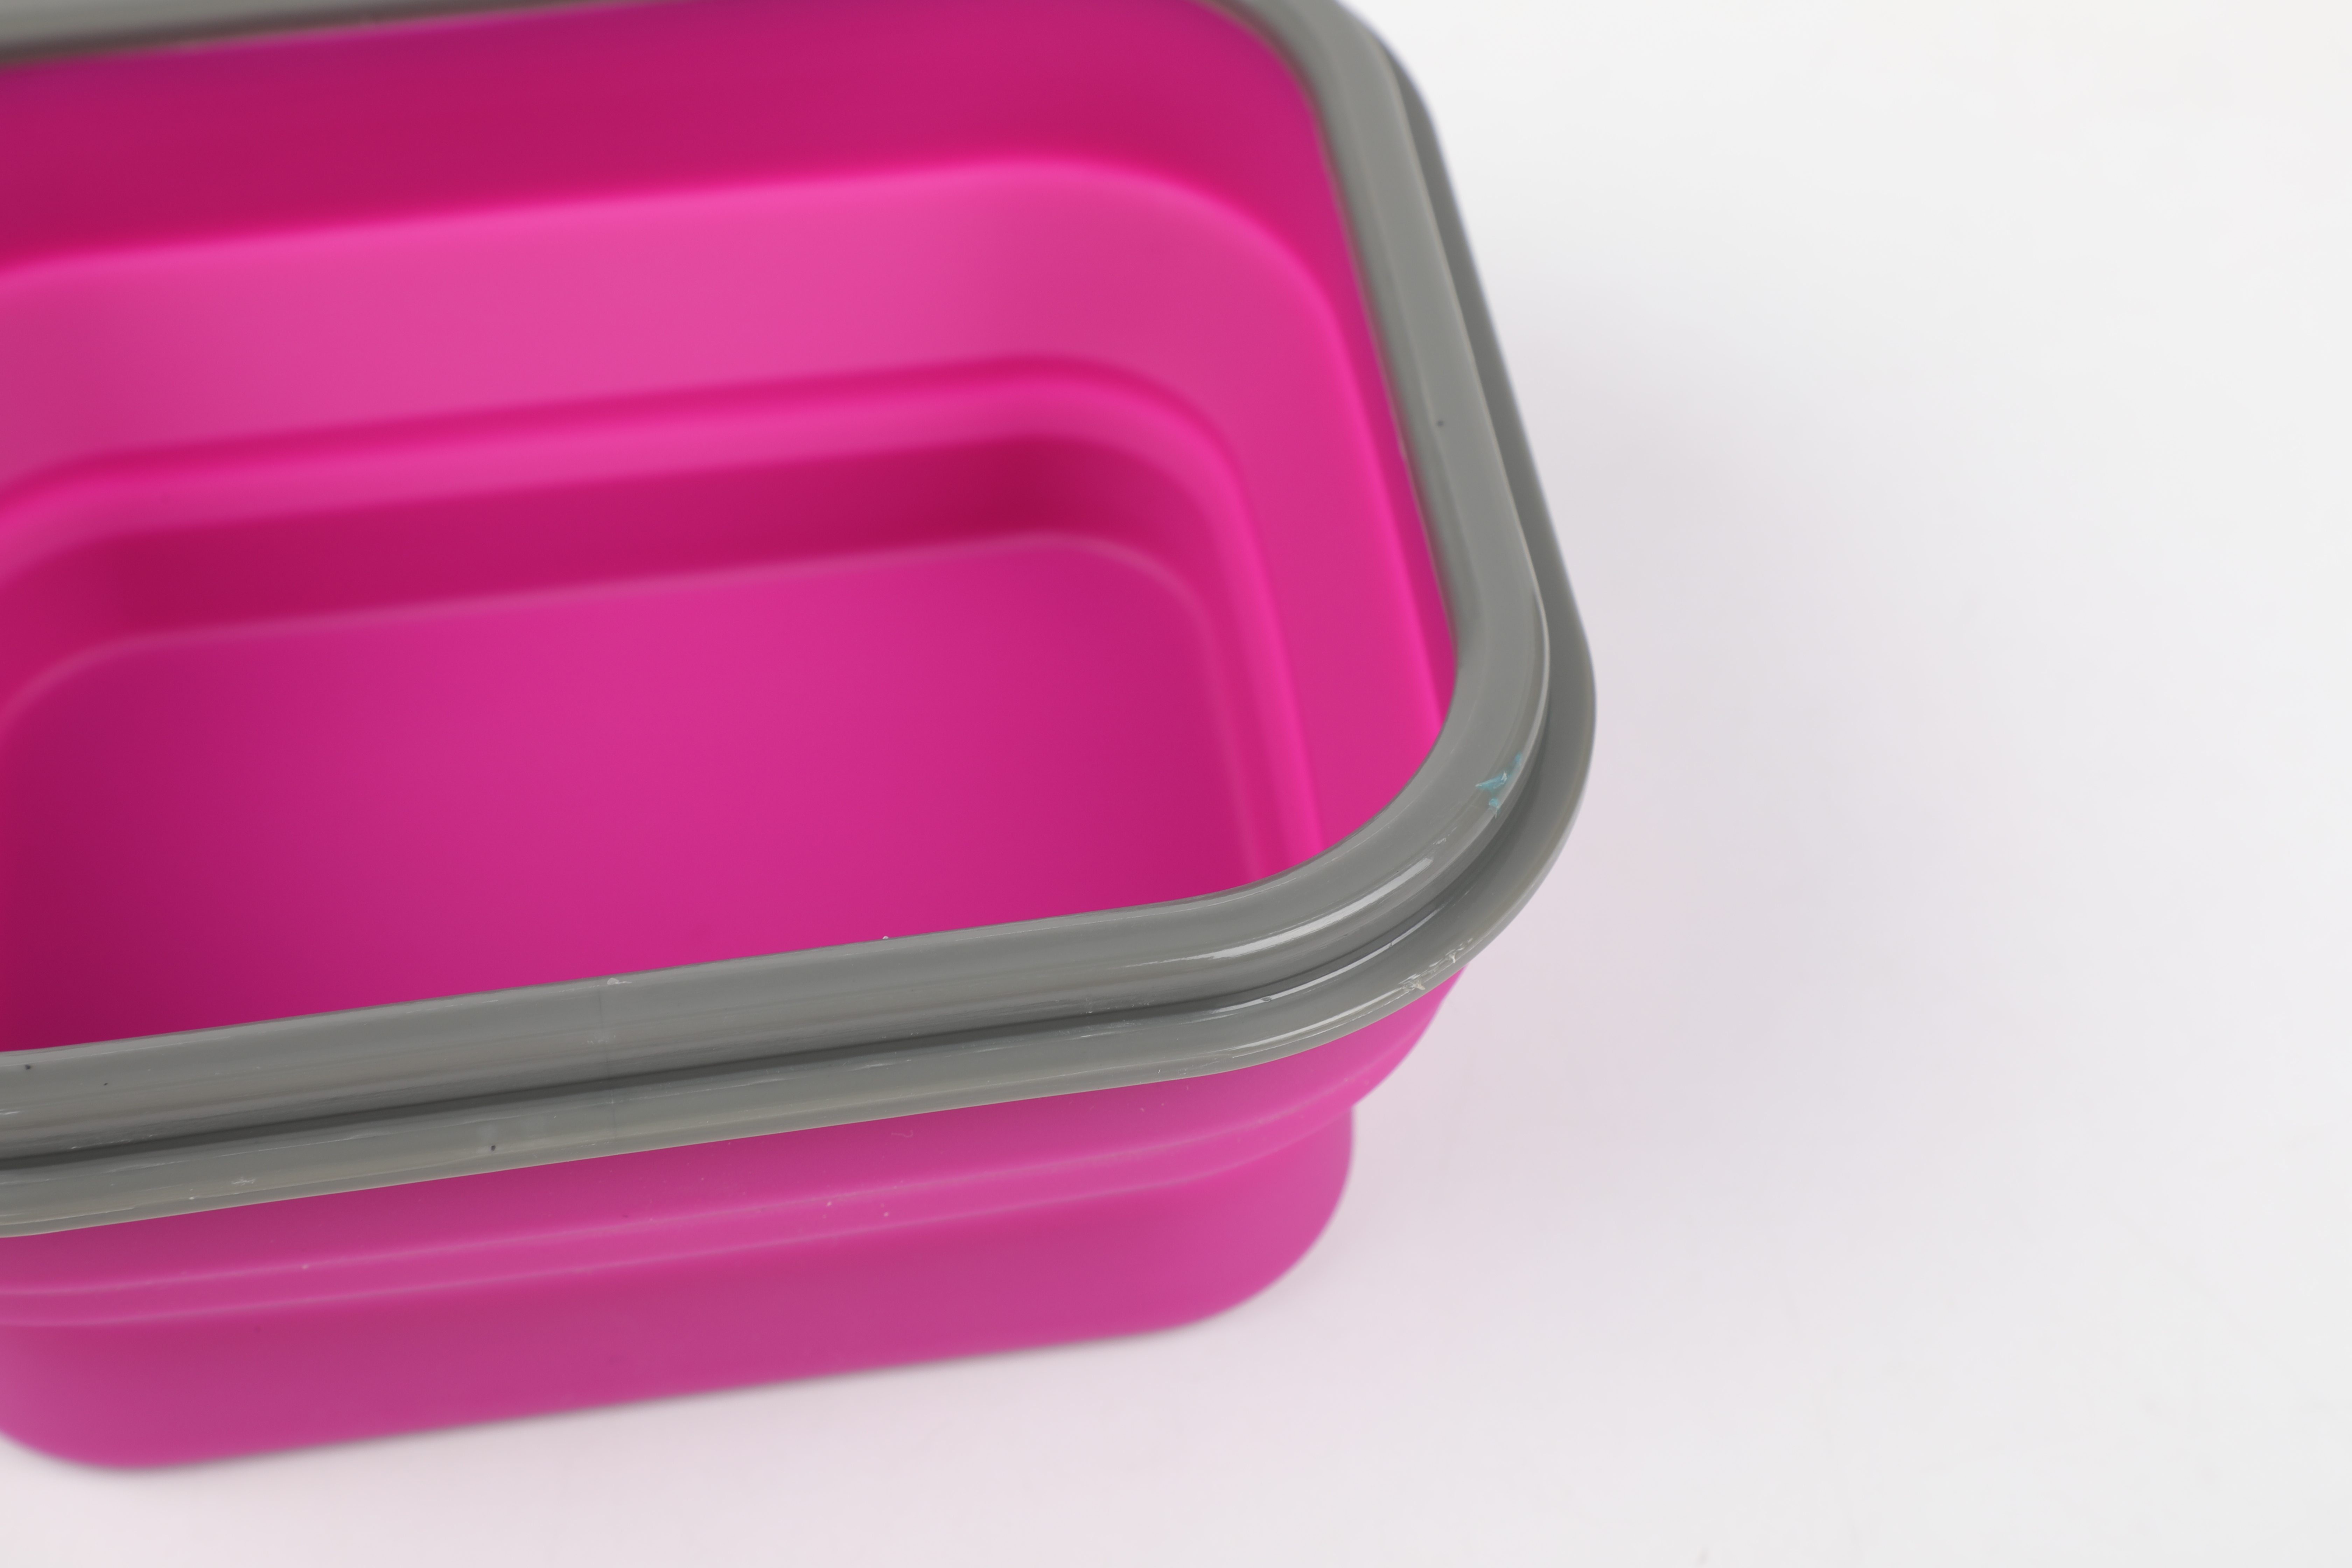 Foldable Lunch Bento Box with Spoon